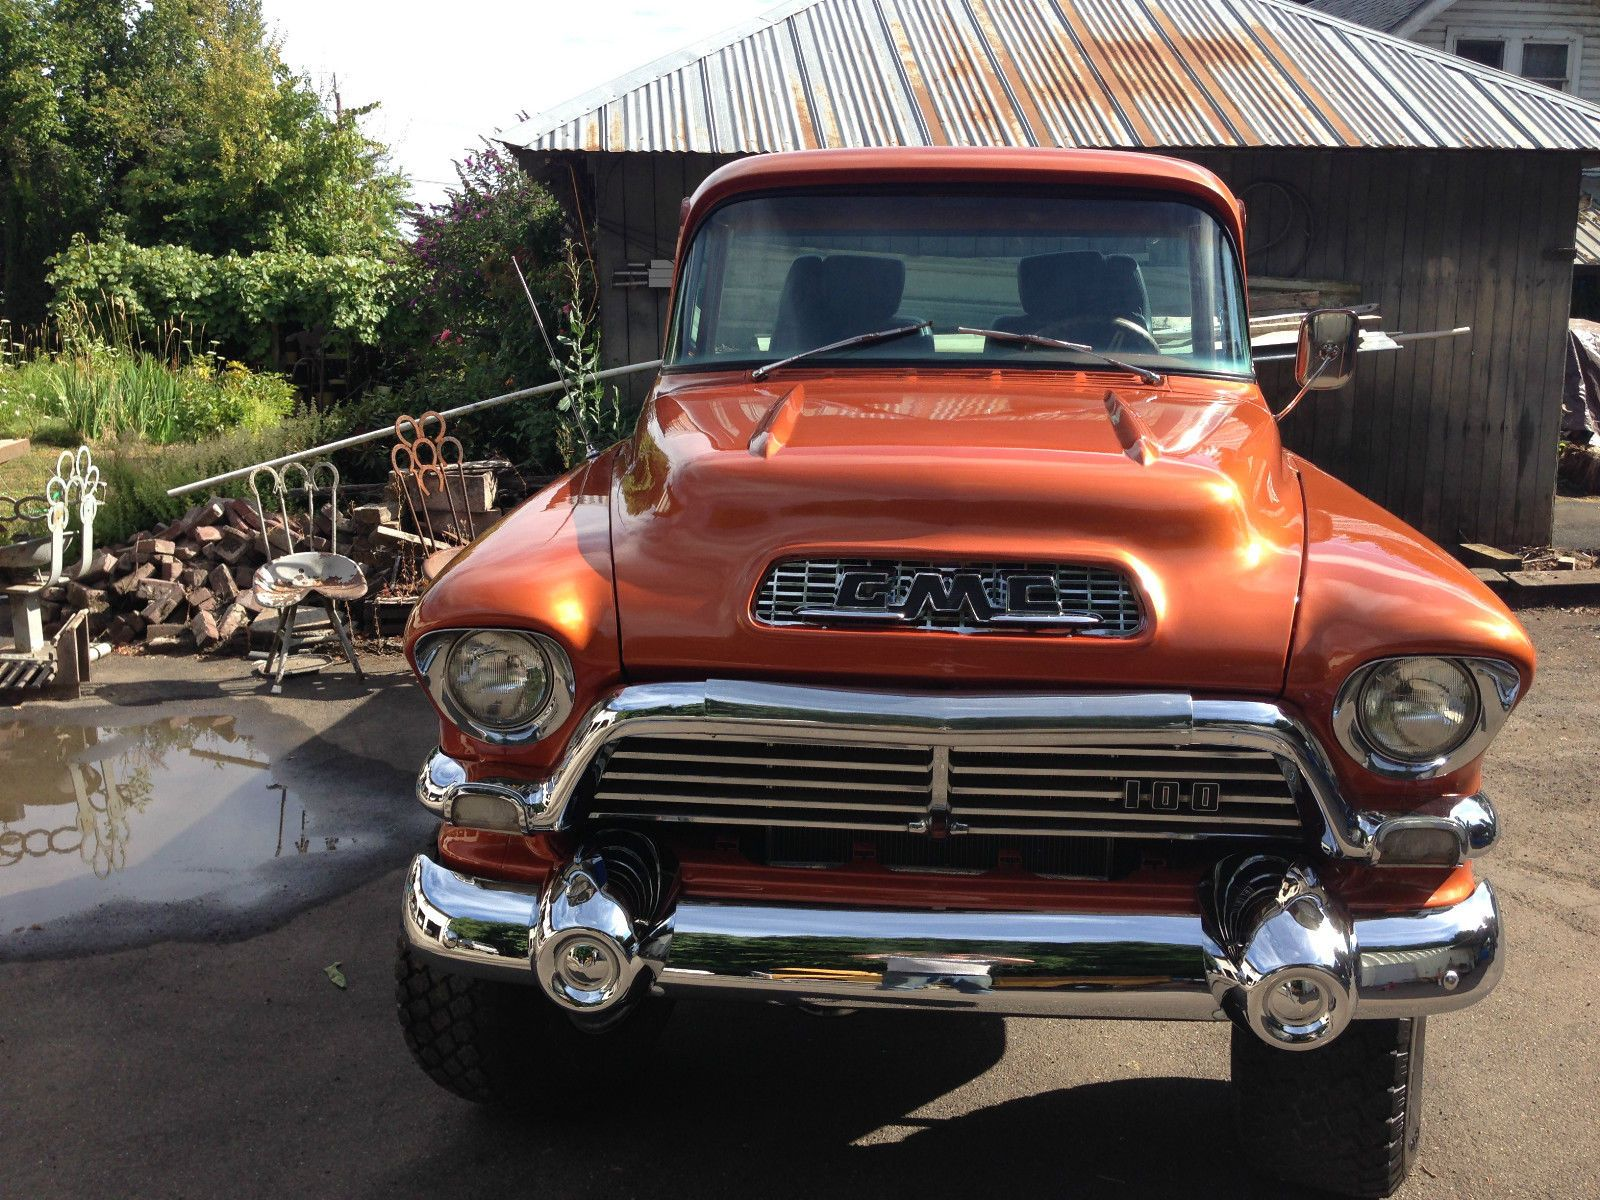 Chevy Work Truck >> Pin by Michael Crook on Auto Related | Pinterest